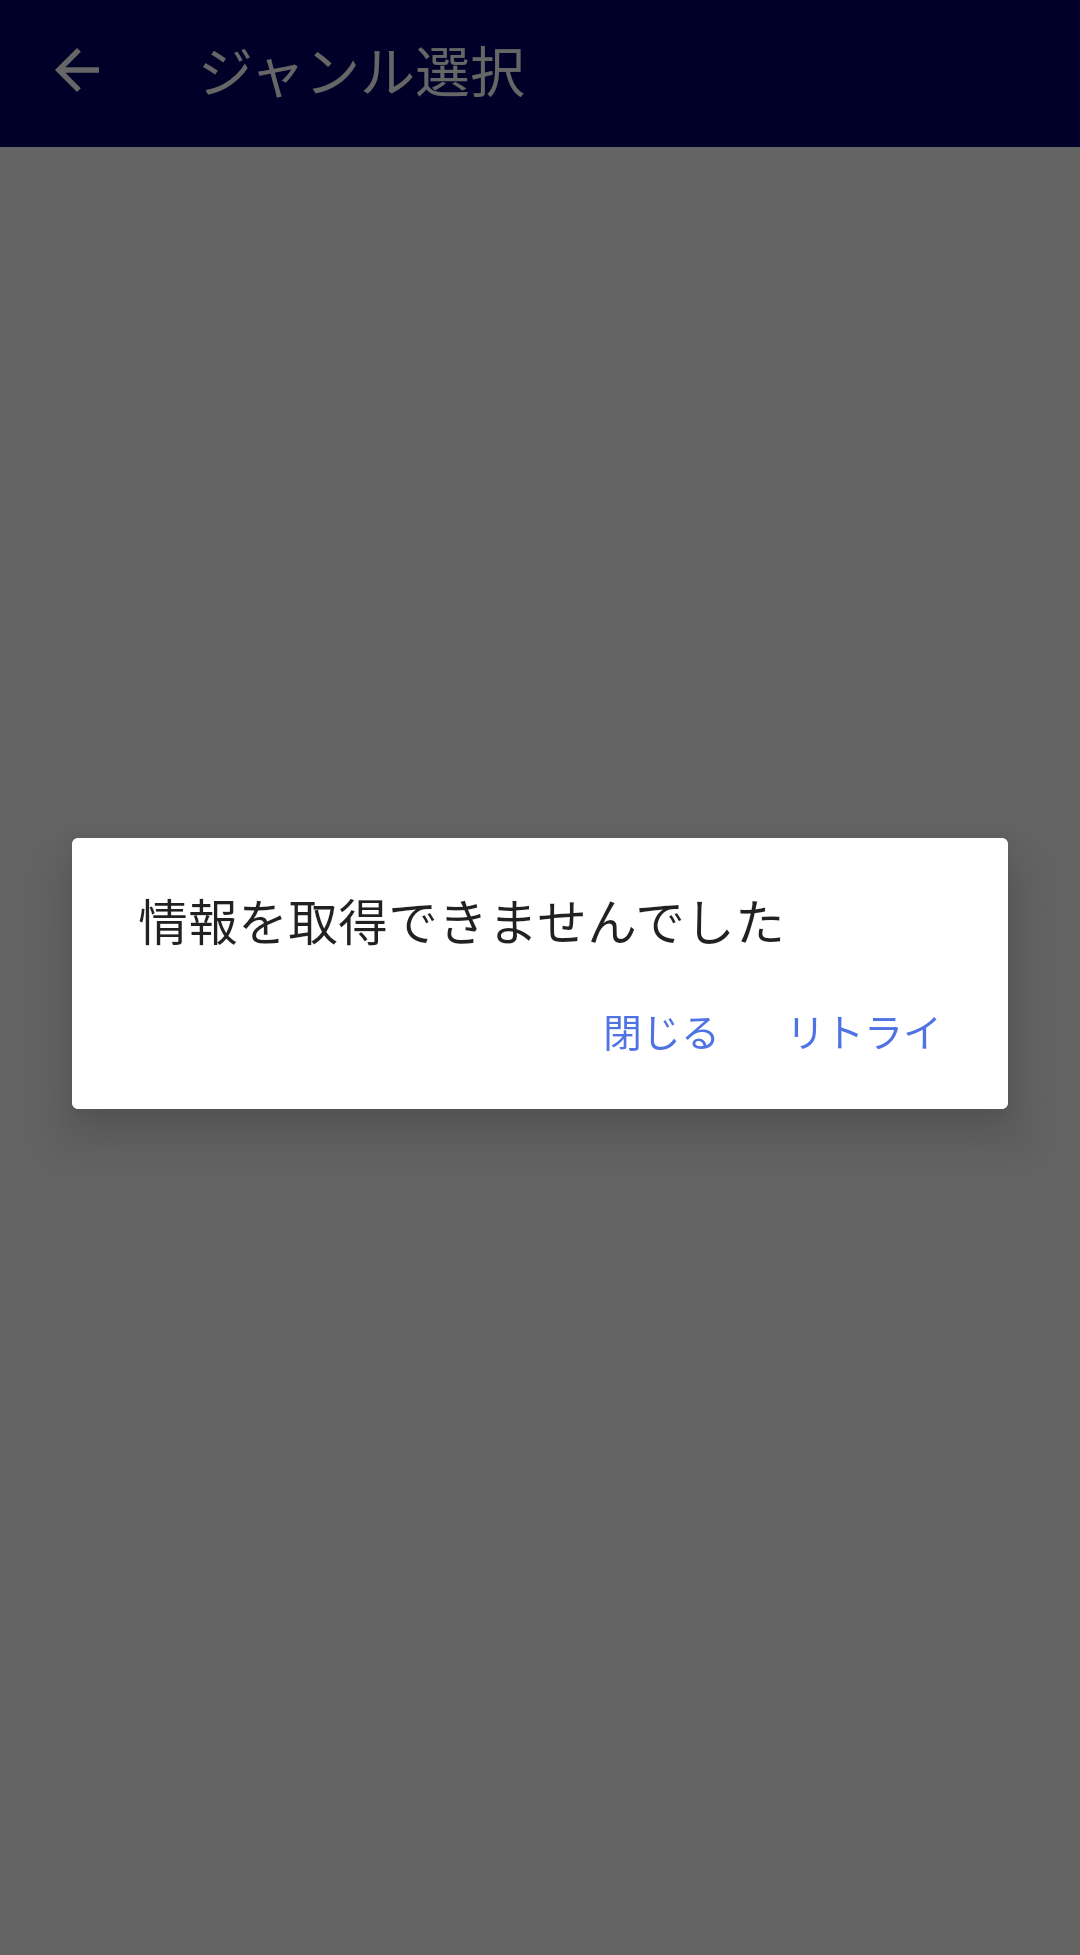 device-2019-12-02-125846.png